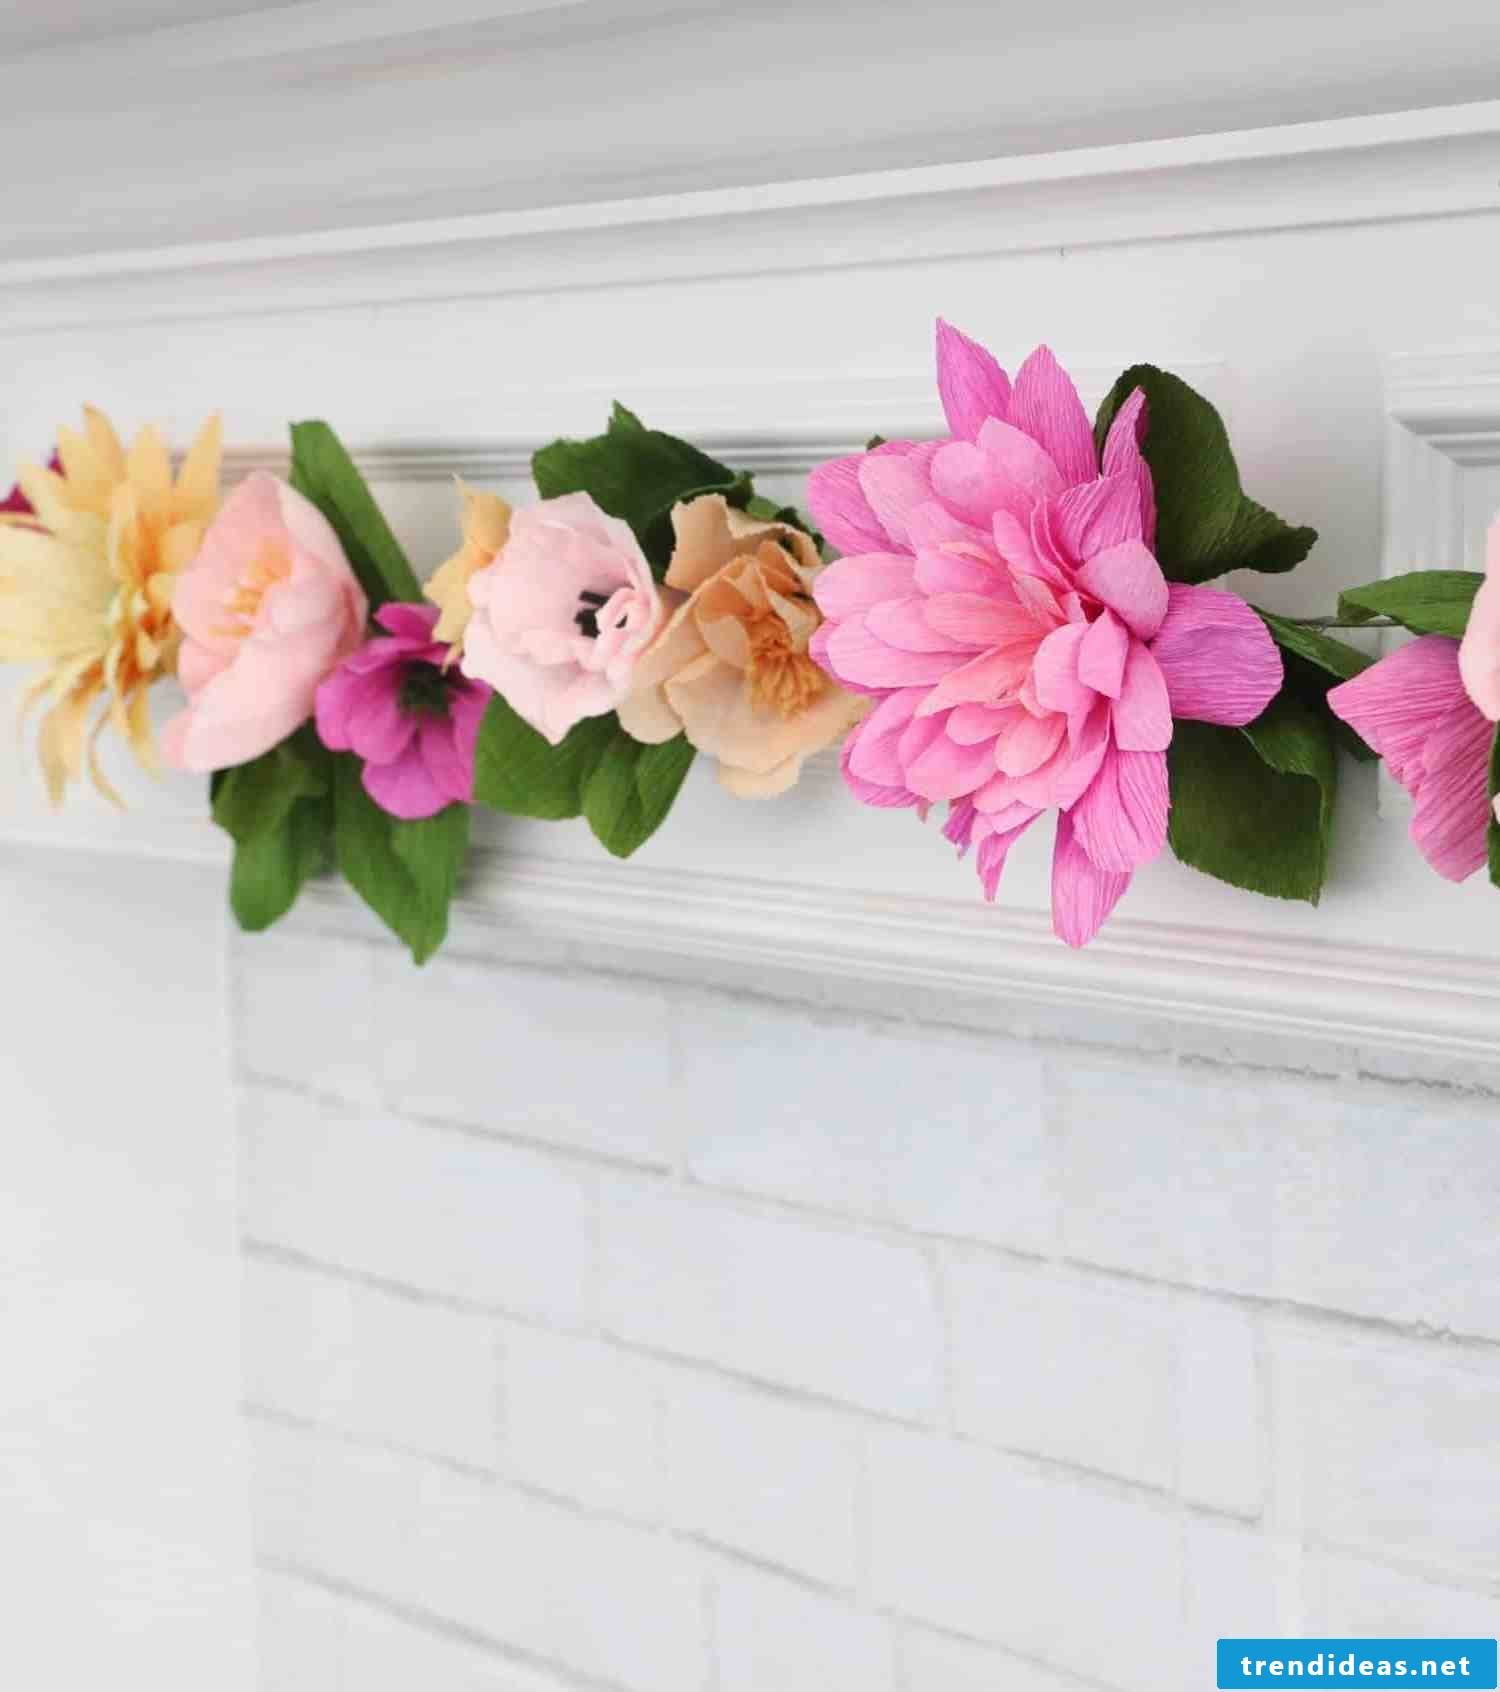 Handicrafts for nursery wall decor with crepe paper flowers